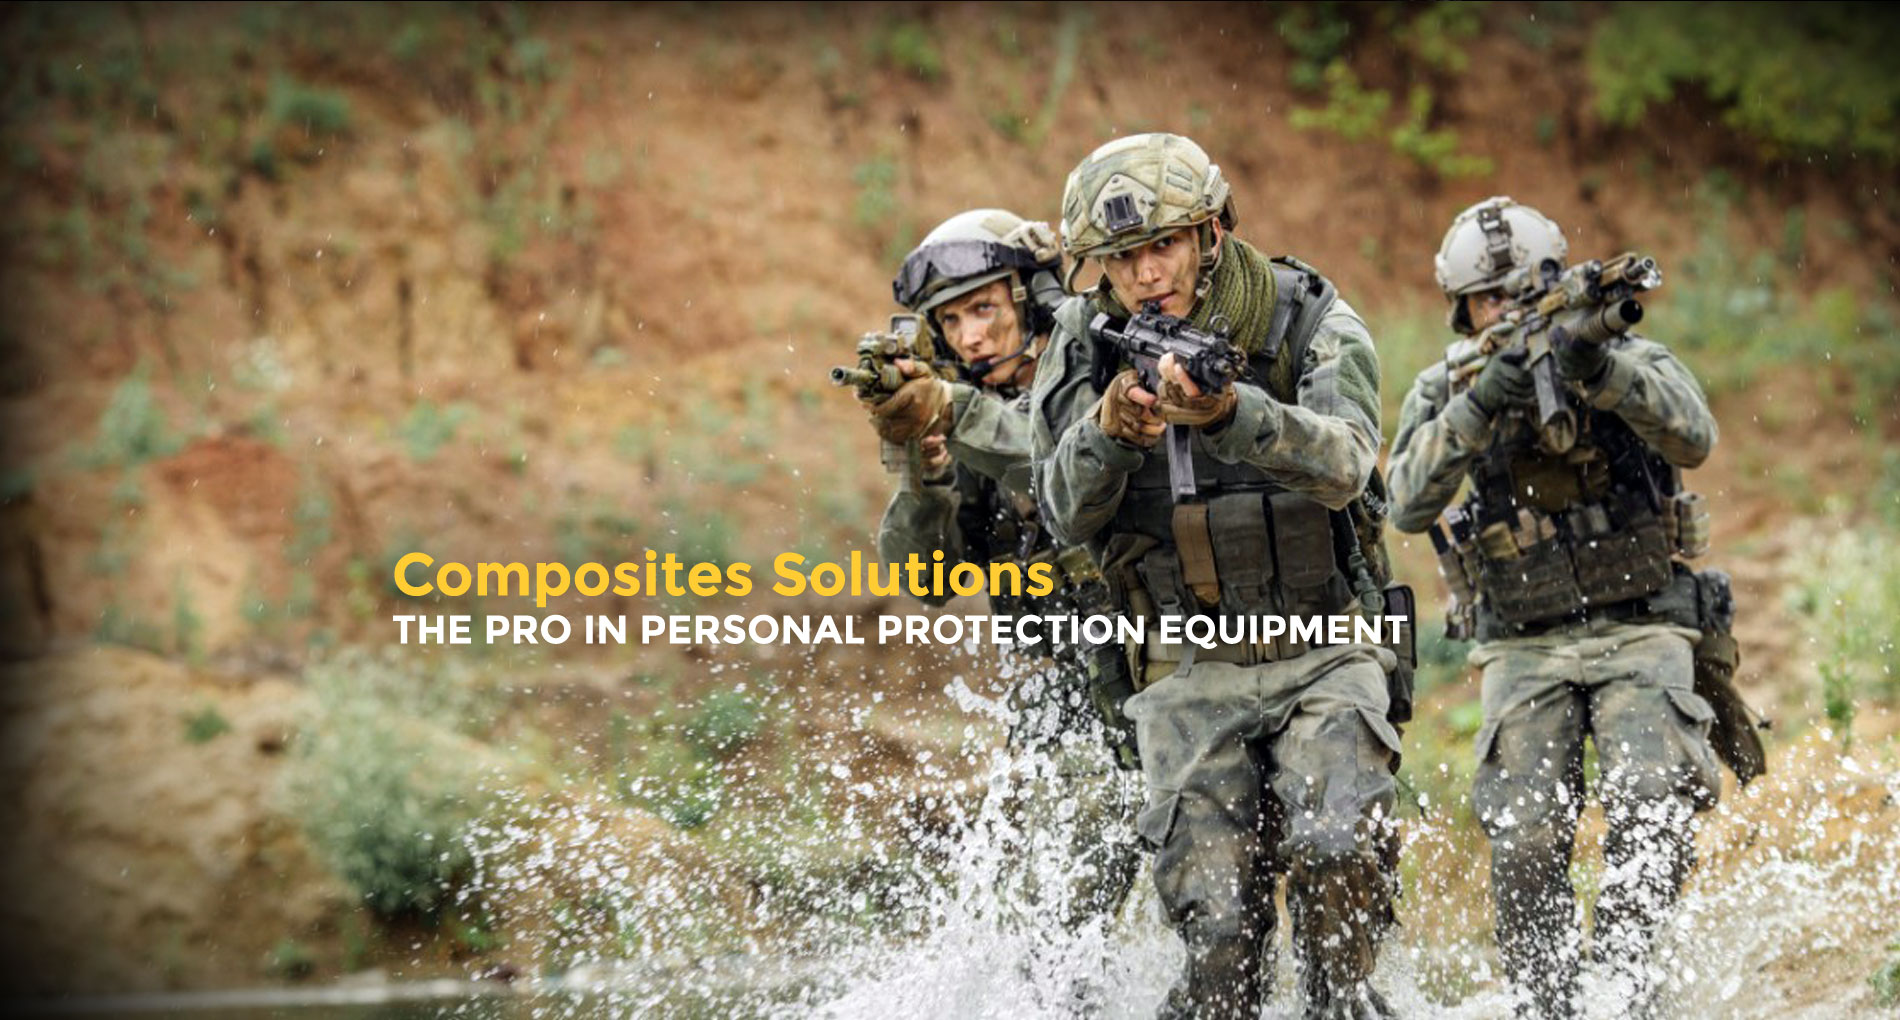 Composites Solutions